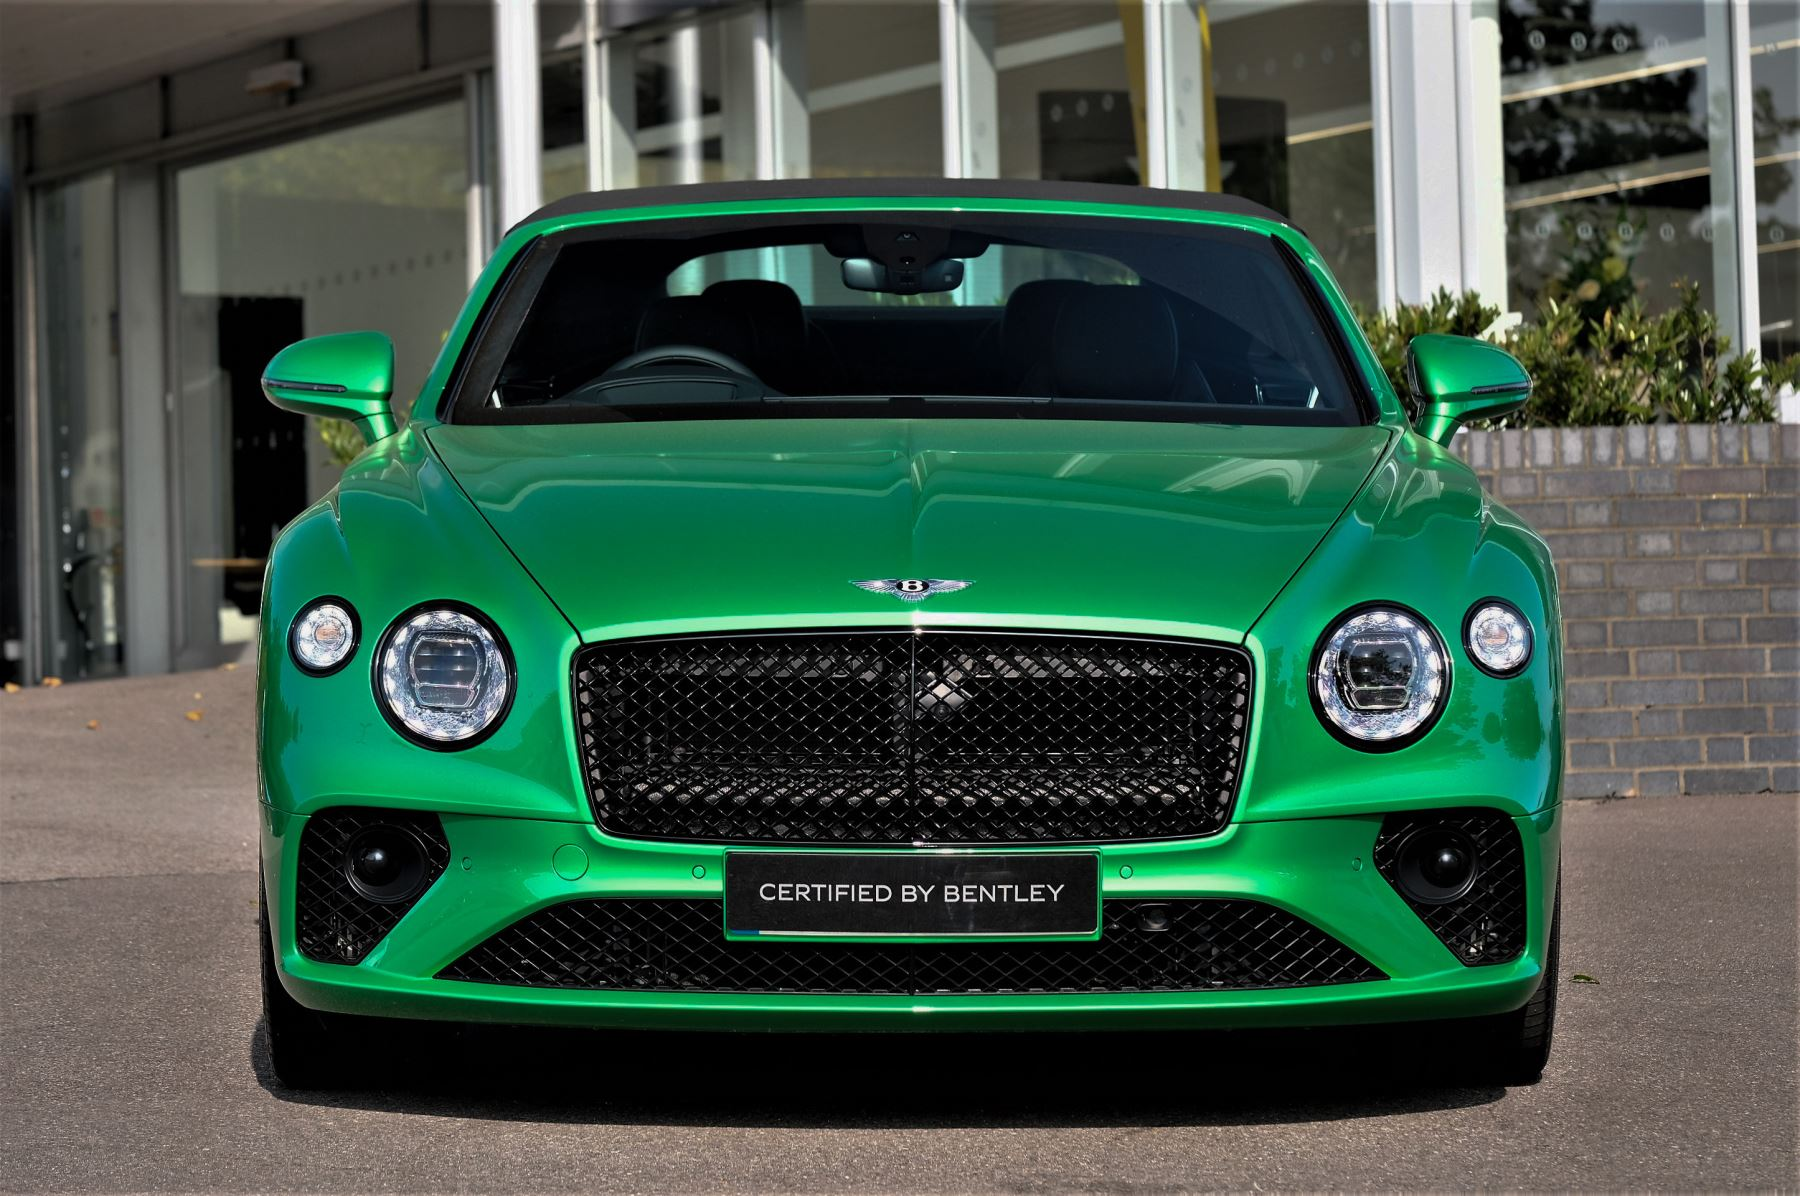 Bentley Continental GTC 6.0 W12 2dr Mulliner Driving Specification image 2